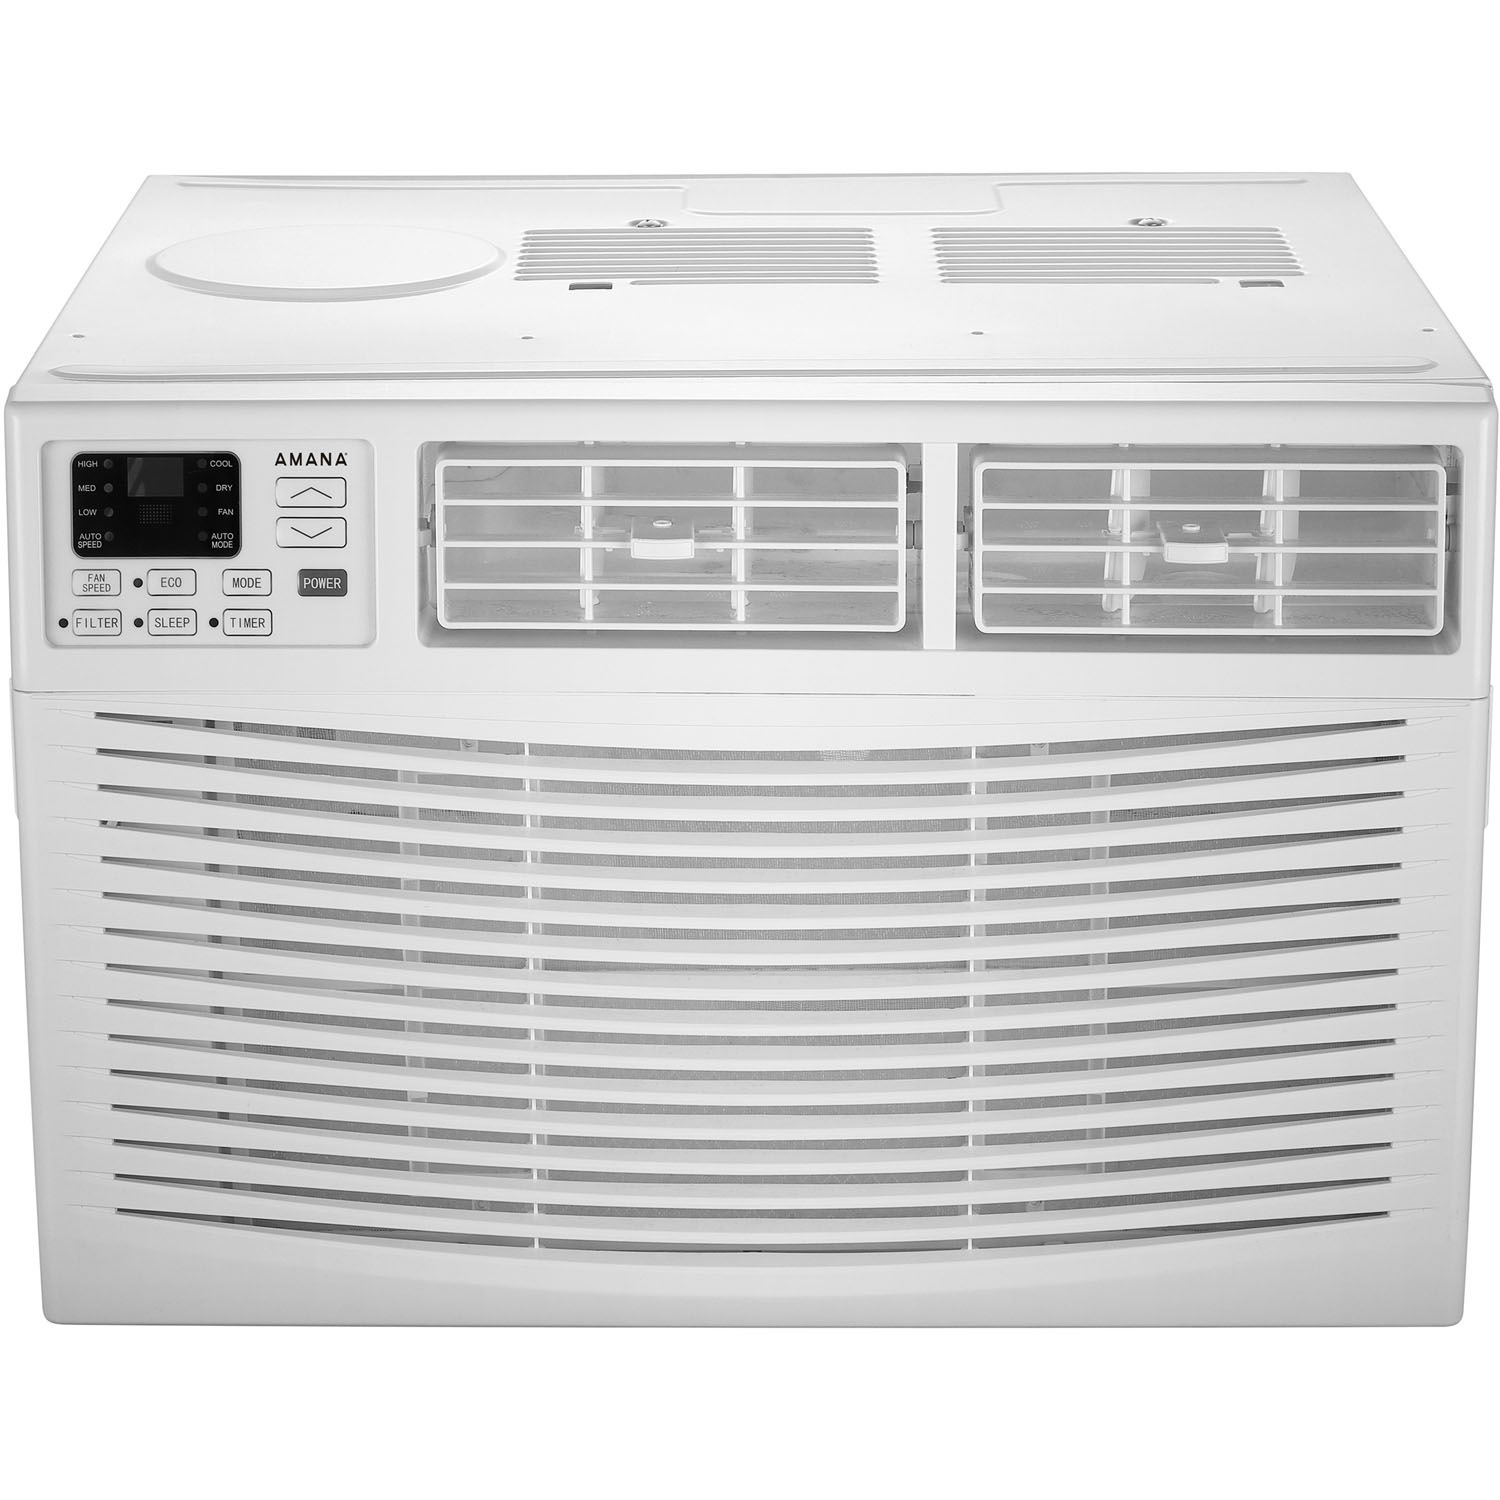 Amana AMAP151BW 15,000 BTU 115V Window-Mounted Air Conditioner with Remote Control